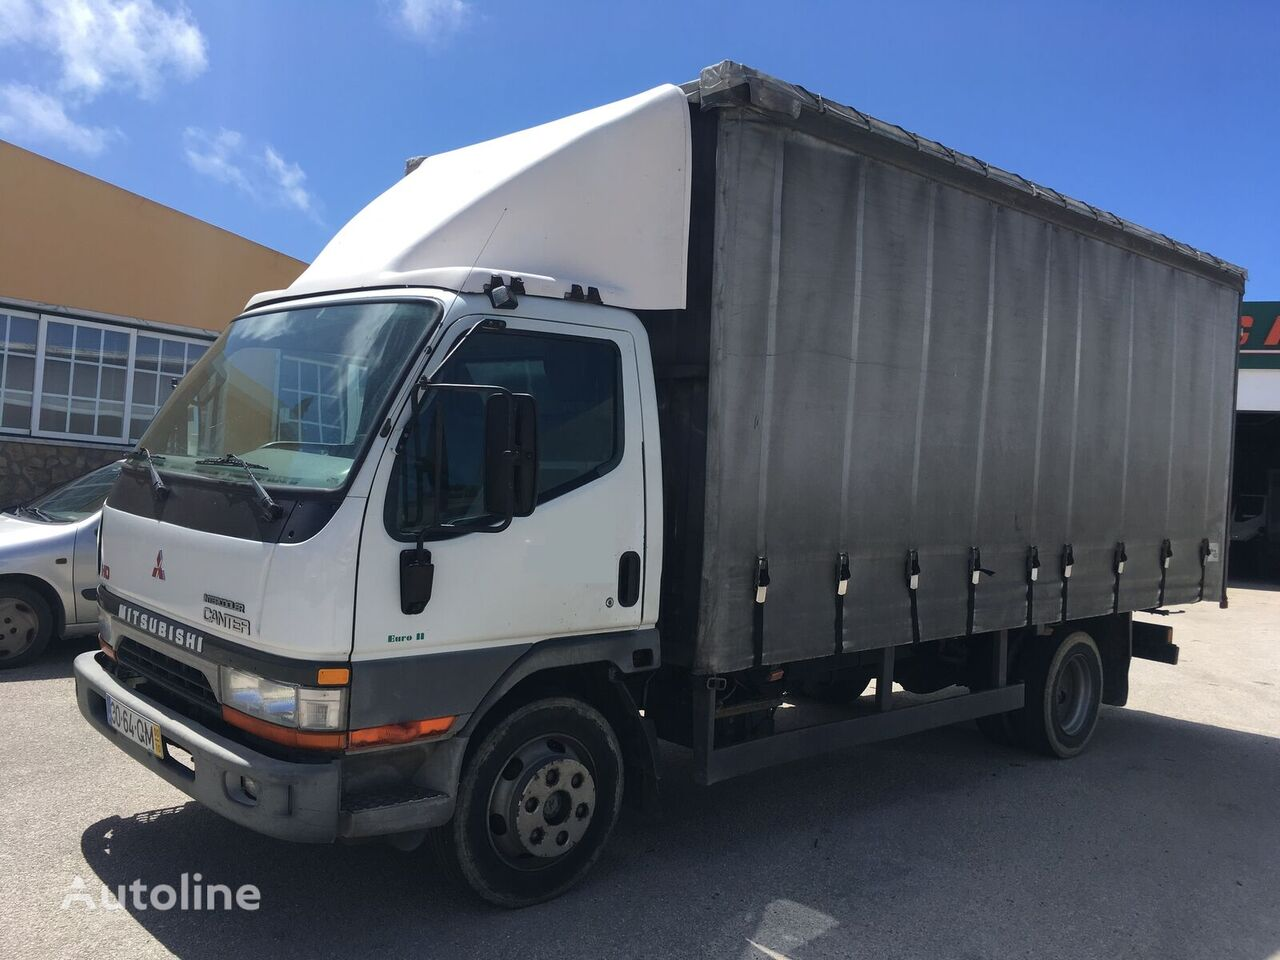 MITSUBISHI CANTER HD curtainsider truck